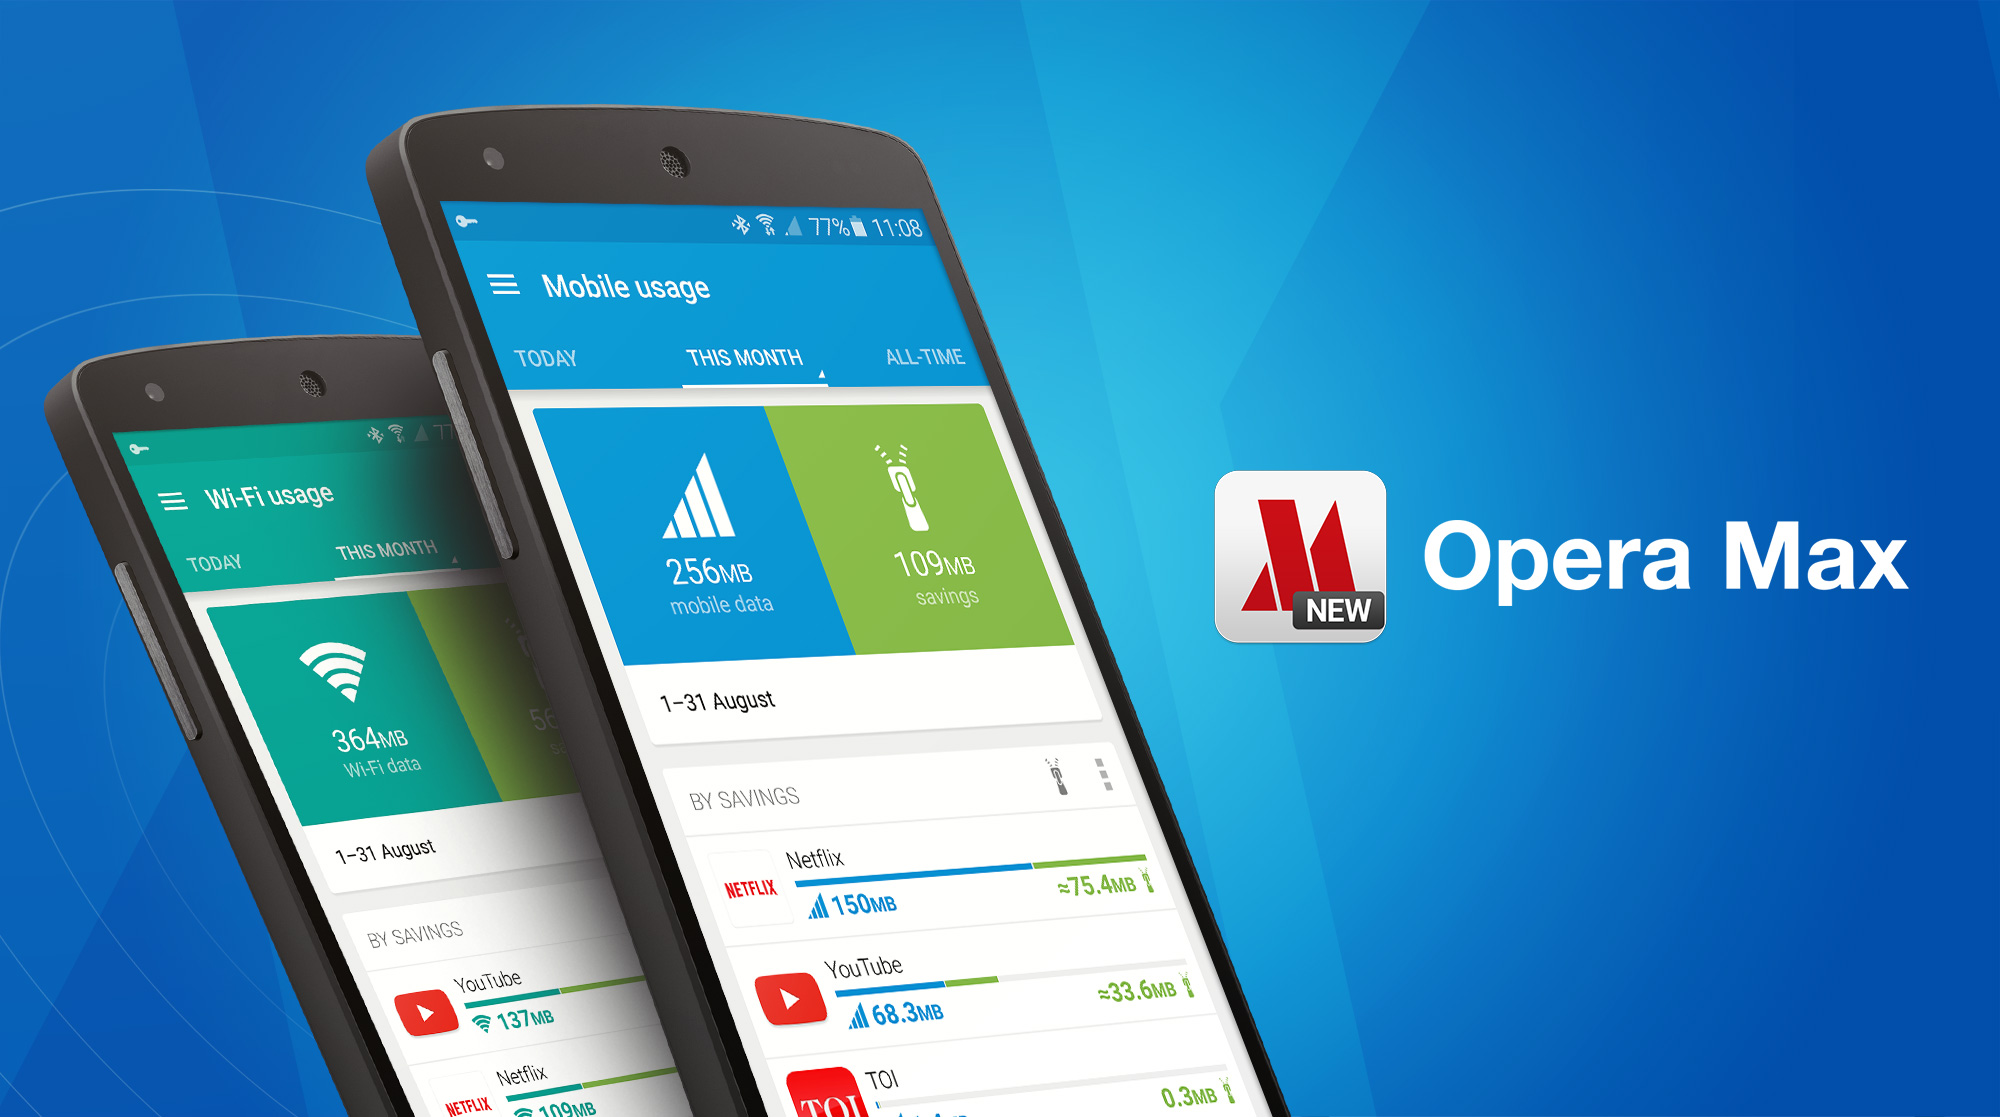 Opera Max saves data when streaming Youtube and Netflix